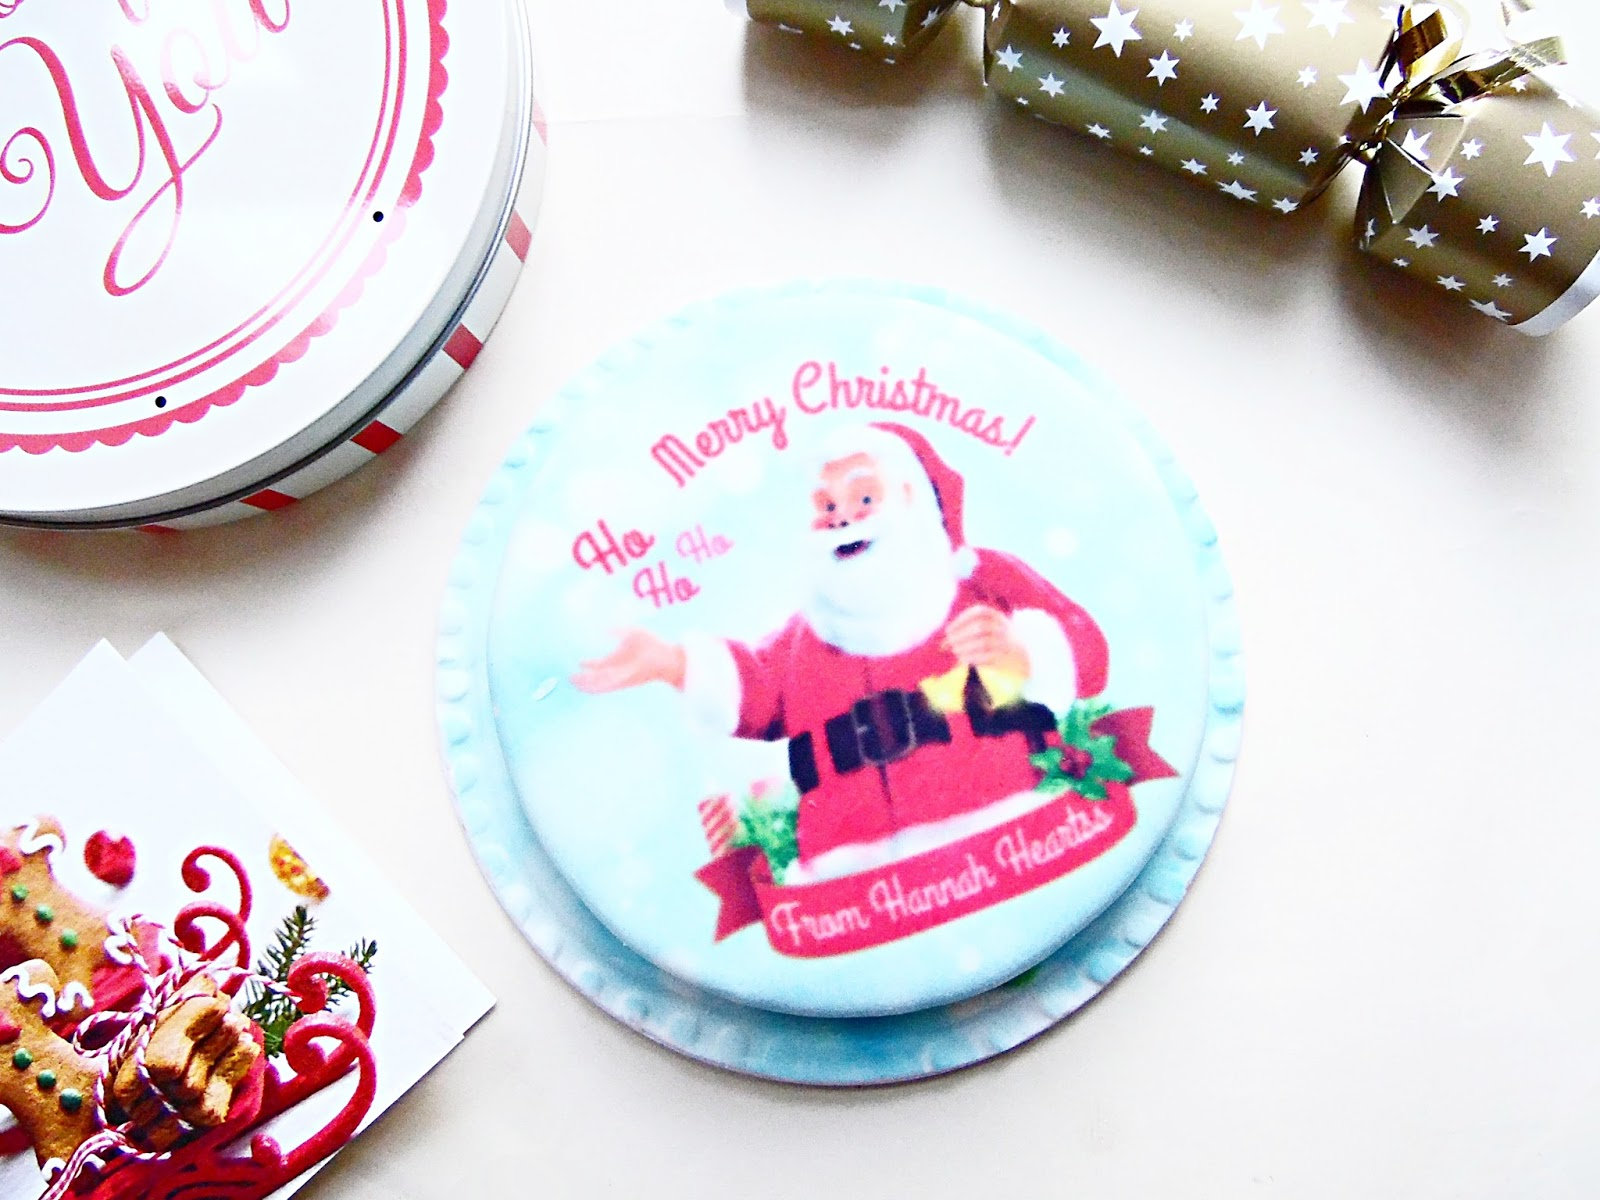 Baker Days Christmas Cake + GIVEAWAY!